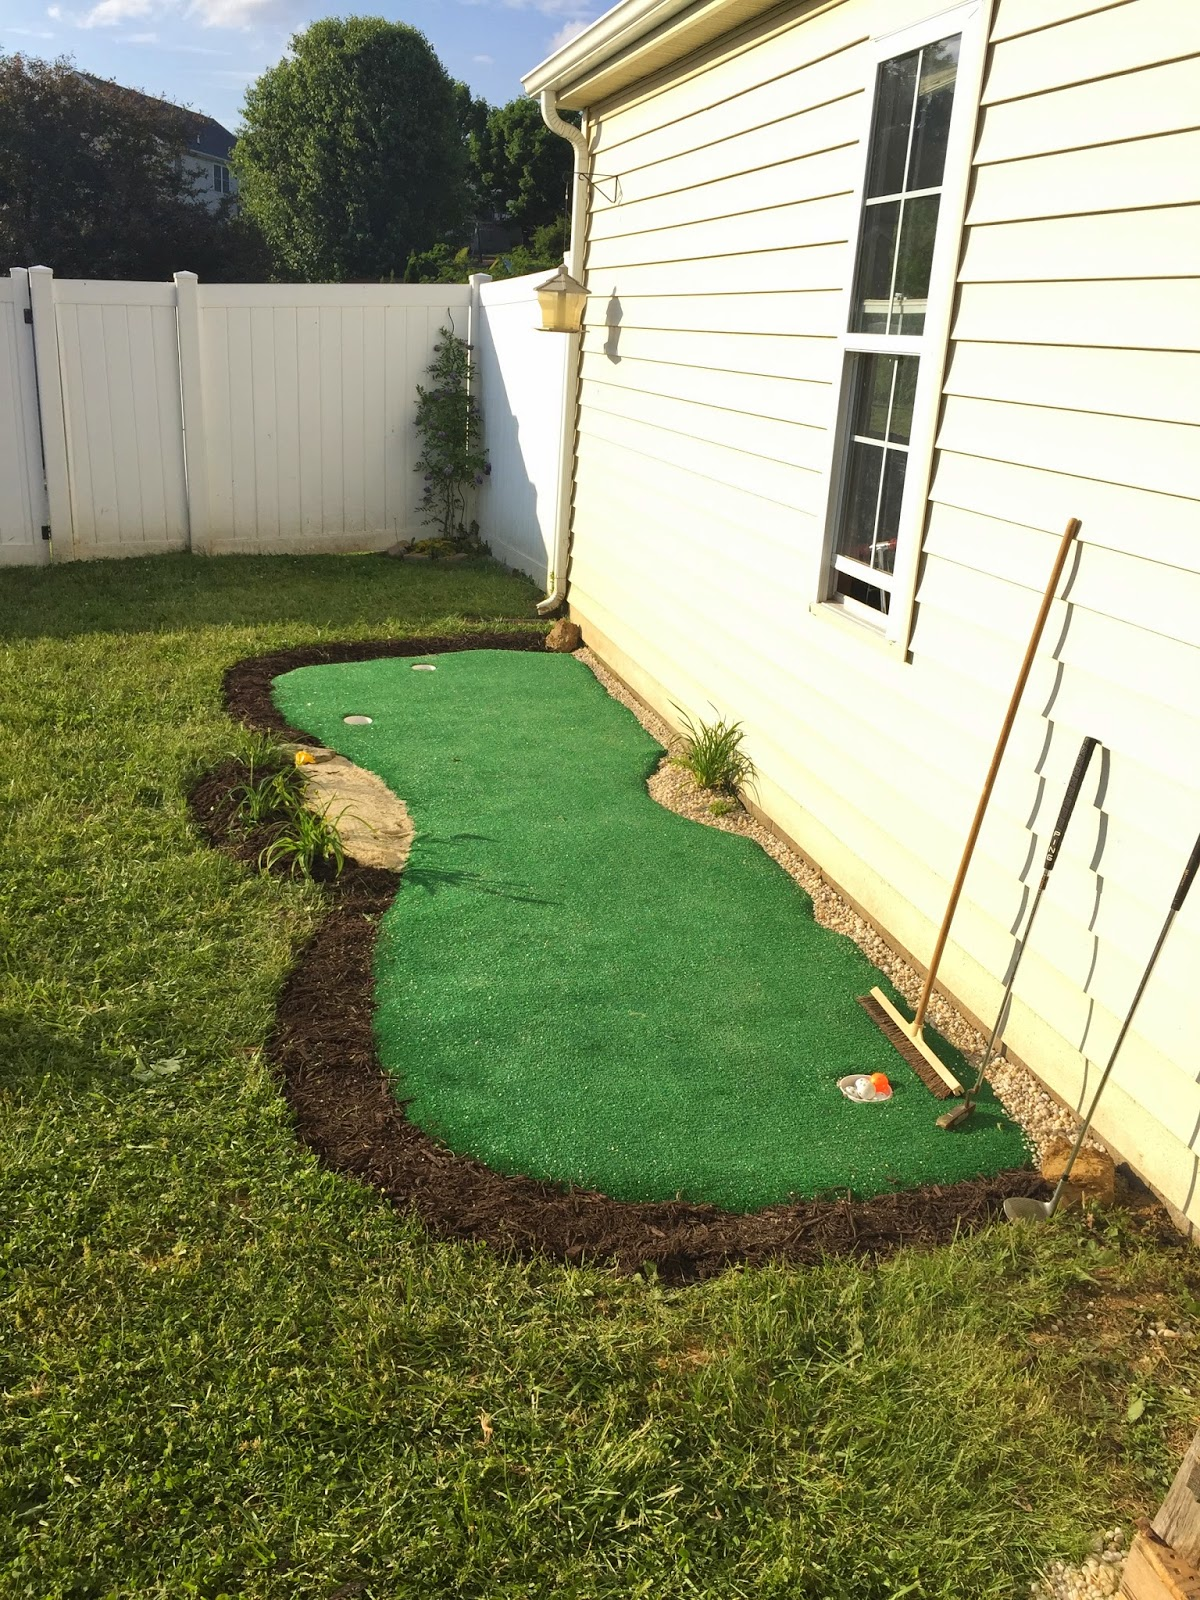 Little Bit Funky: How to make a backyard putting green ...